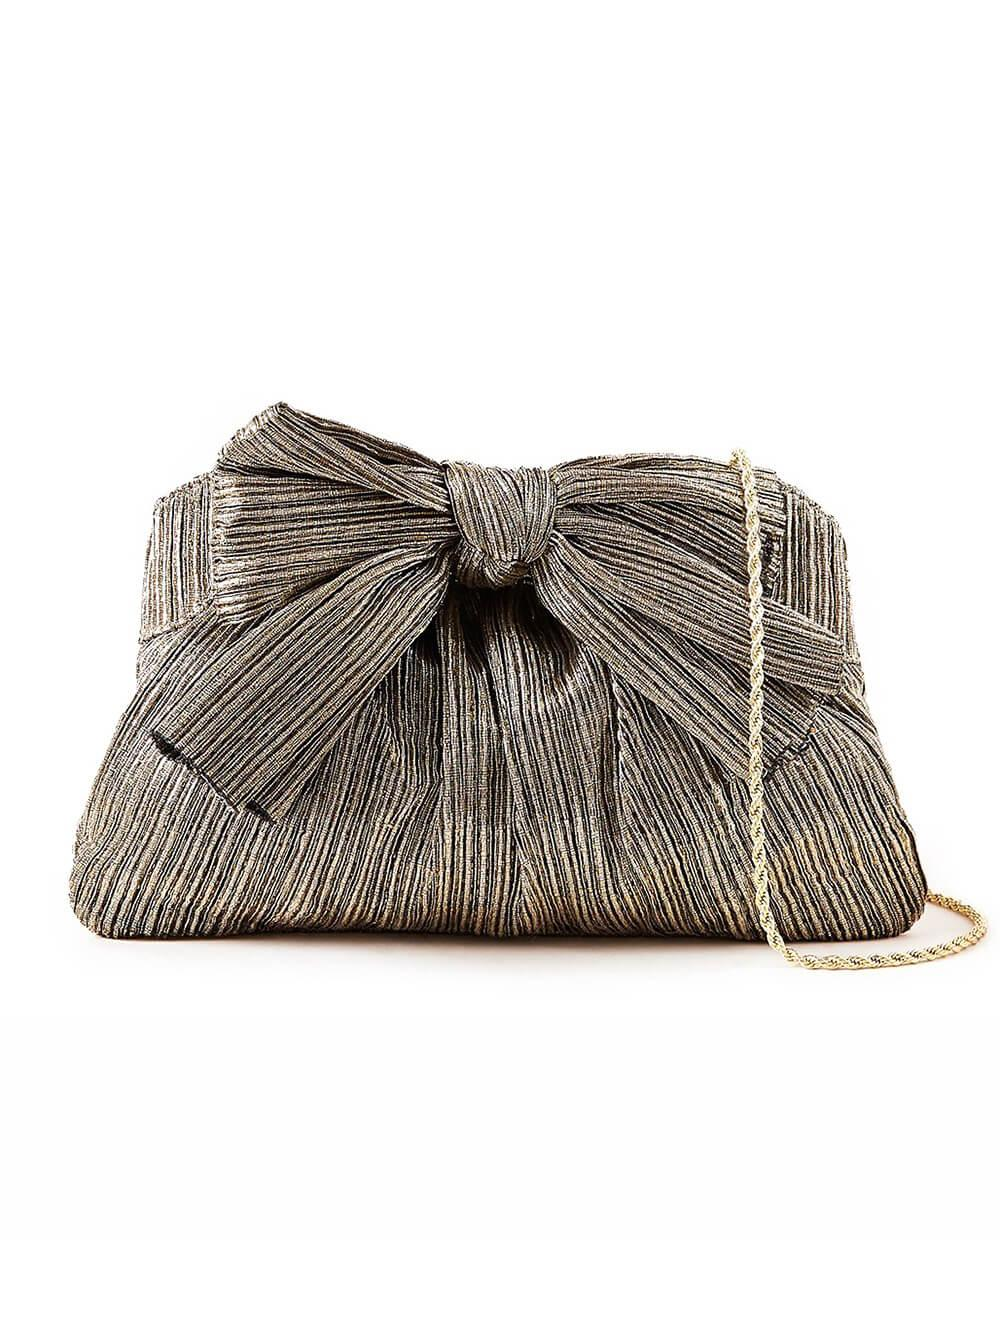 Rayne Pleated Frame Clutch